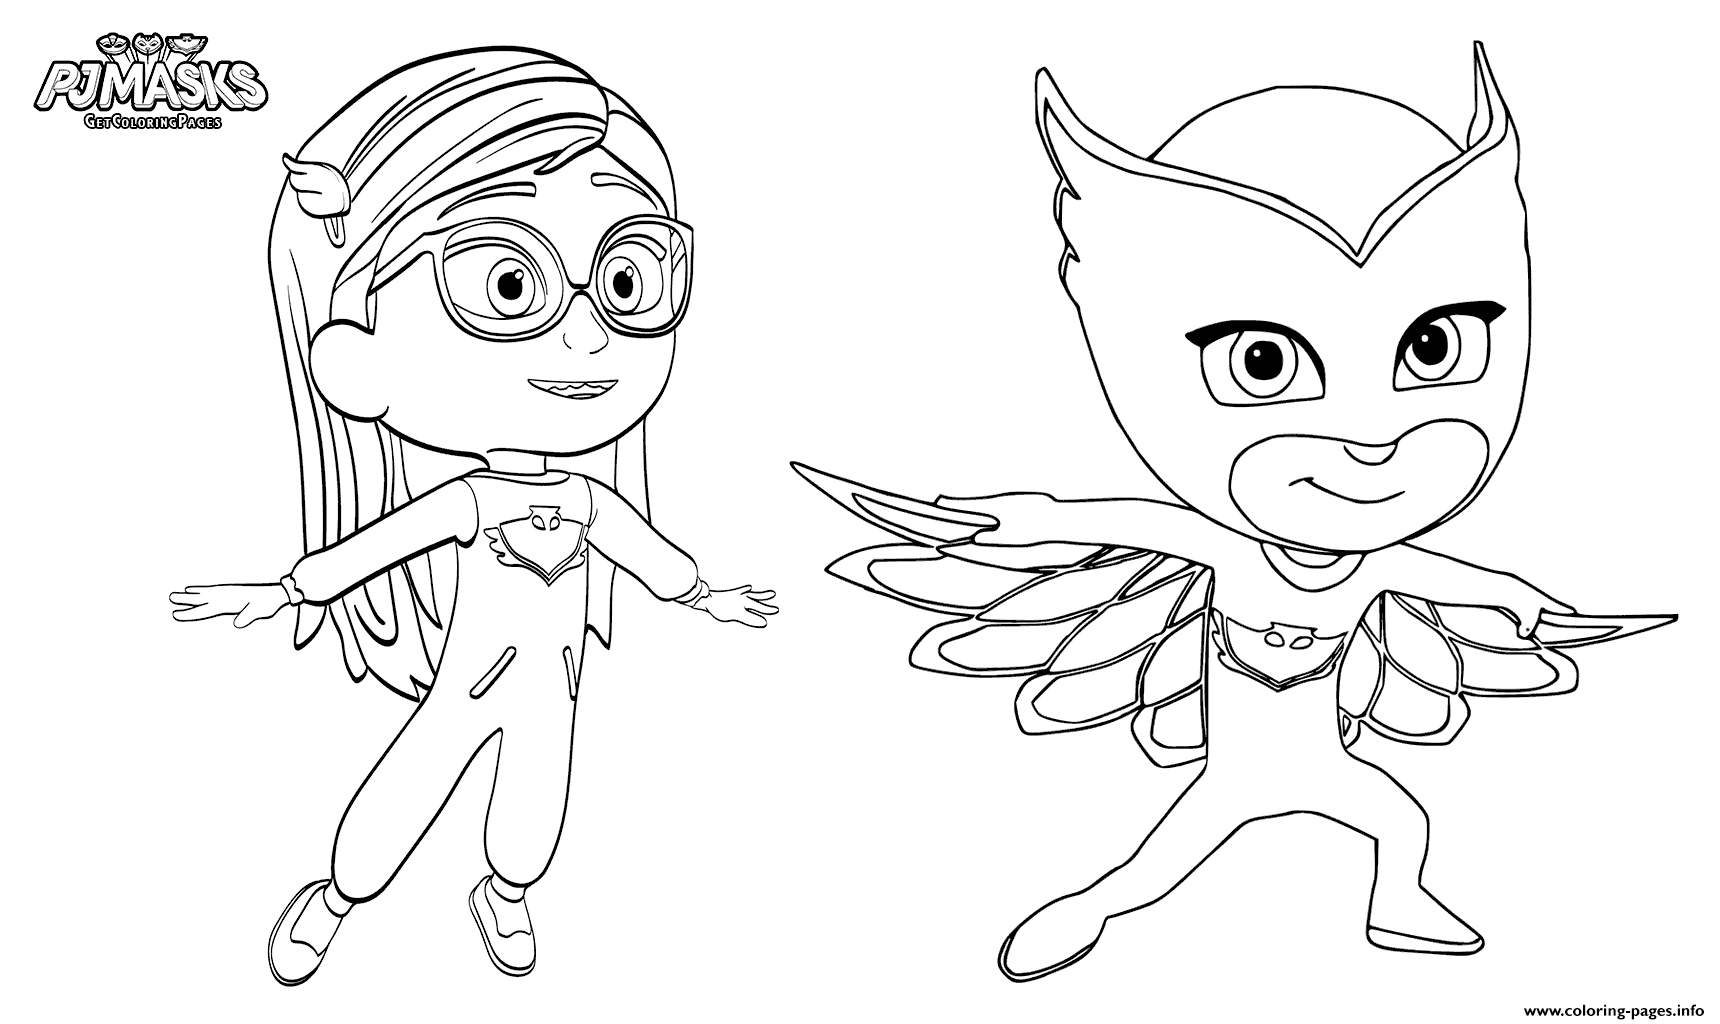 photograph relating to Pj Masks Printable Images named Pajama Hero Amaya Is Owlette Towards PJ Masks Coloring Webpages